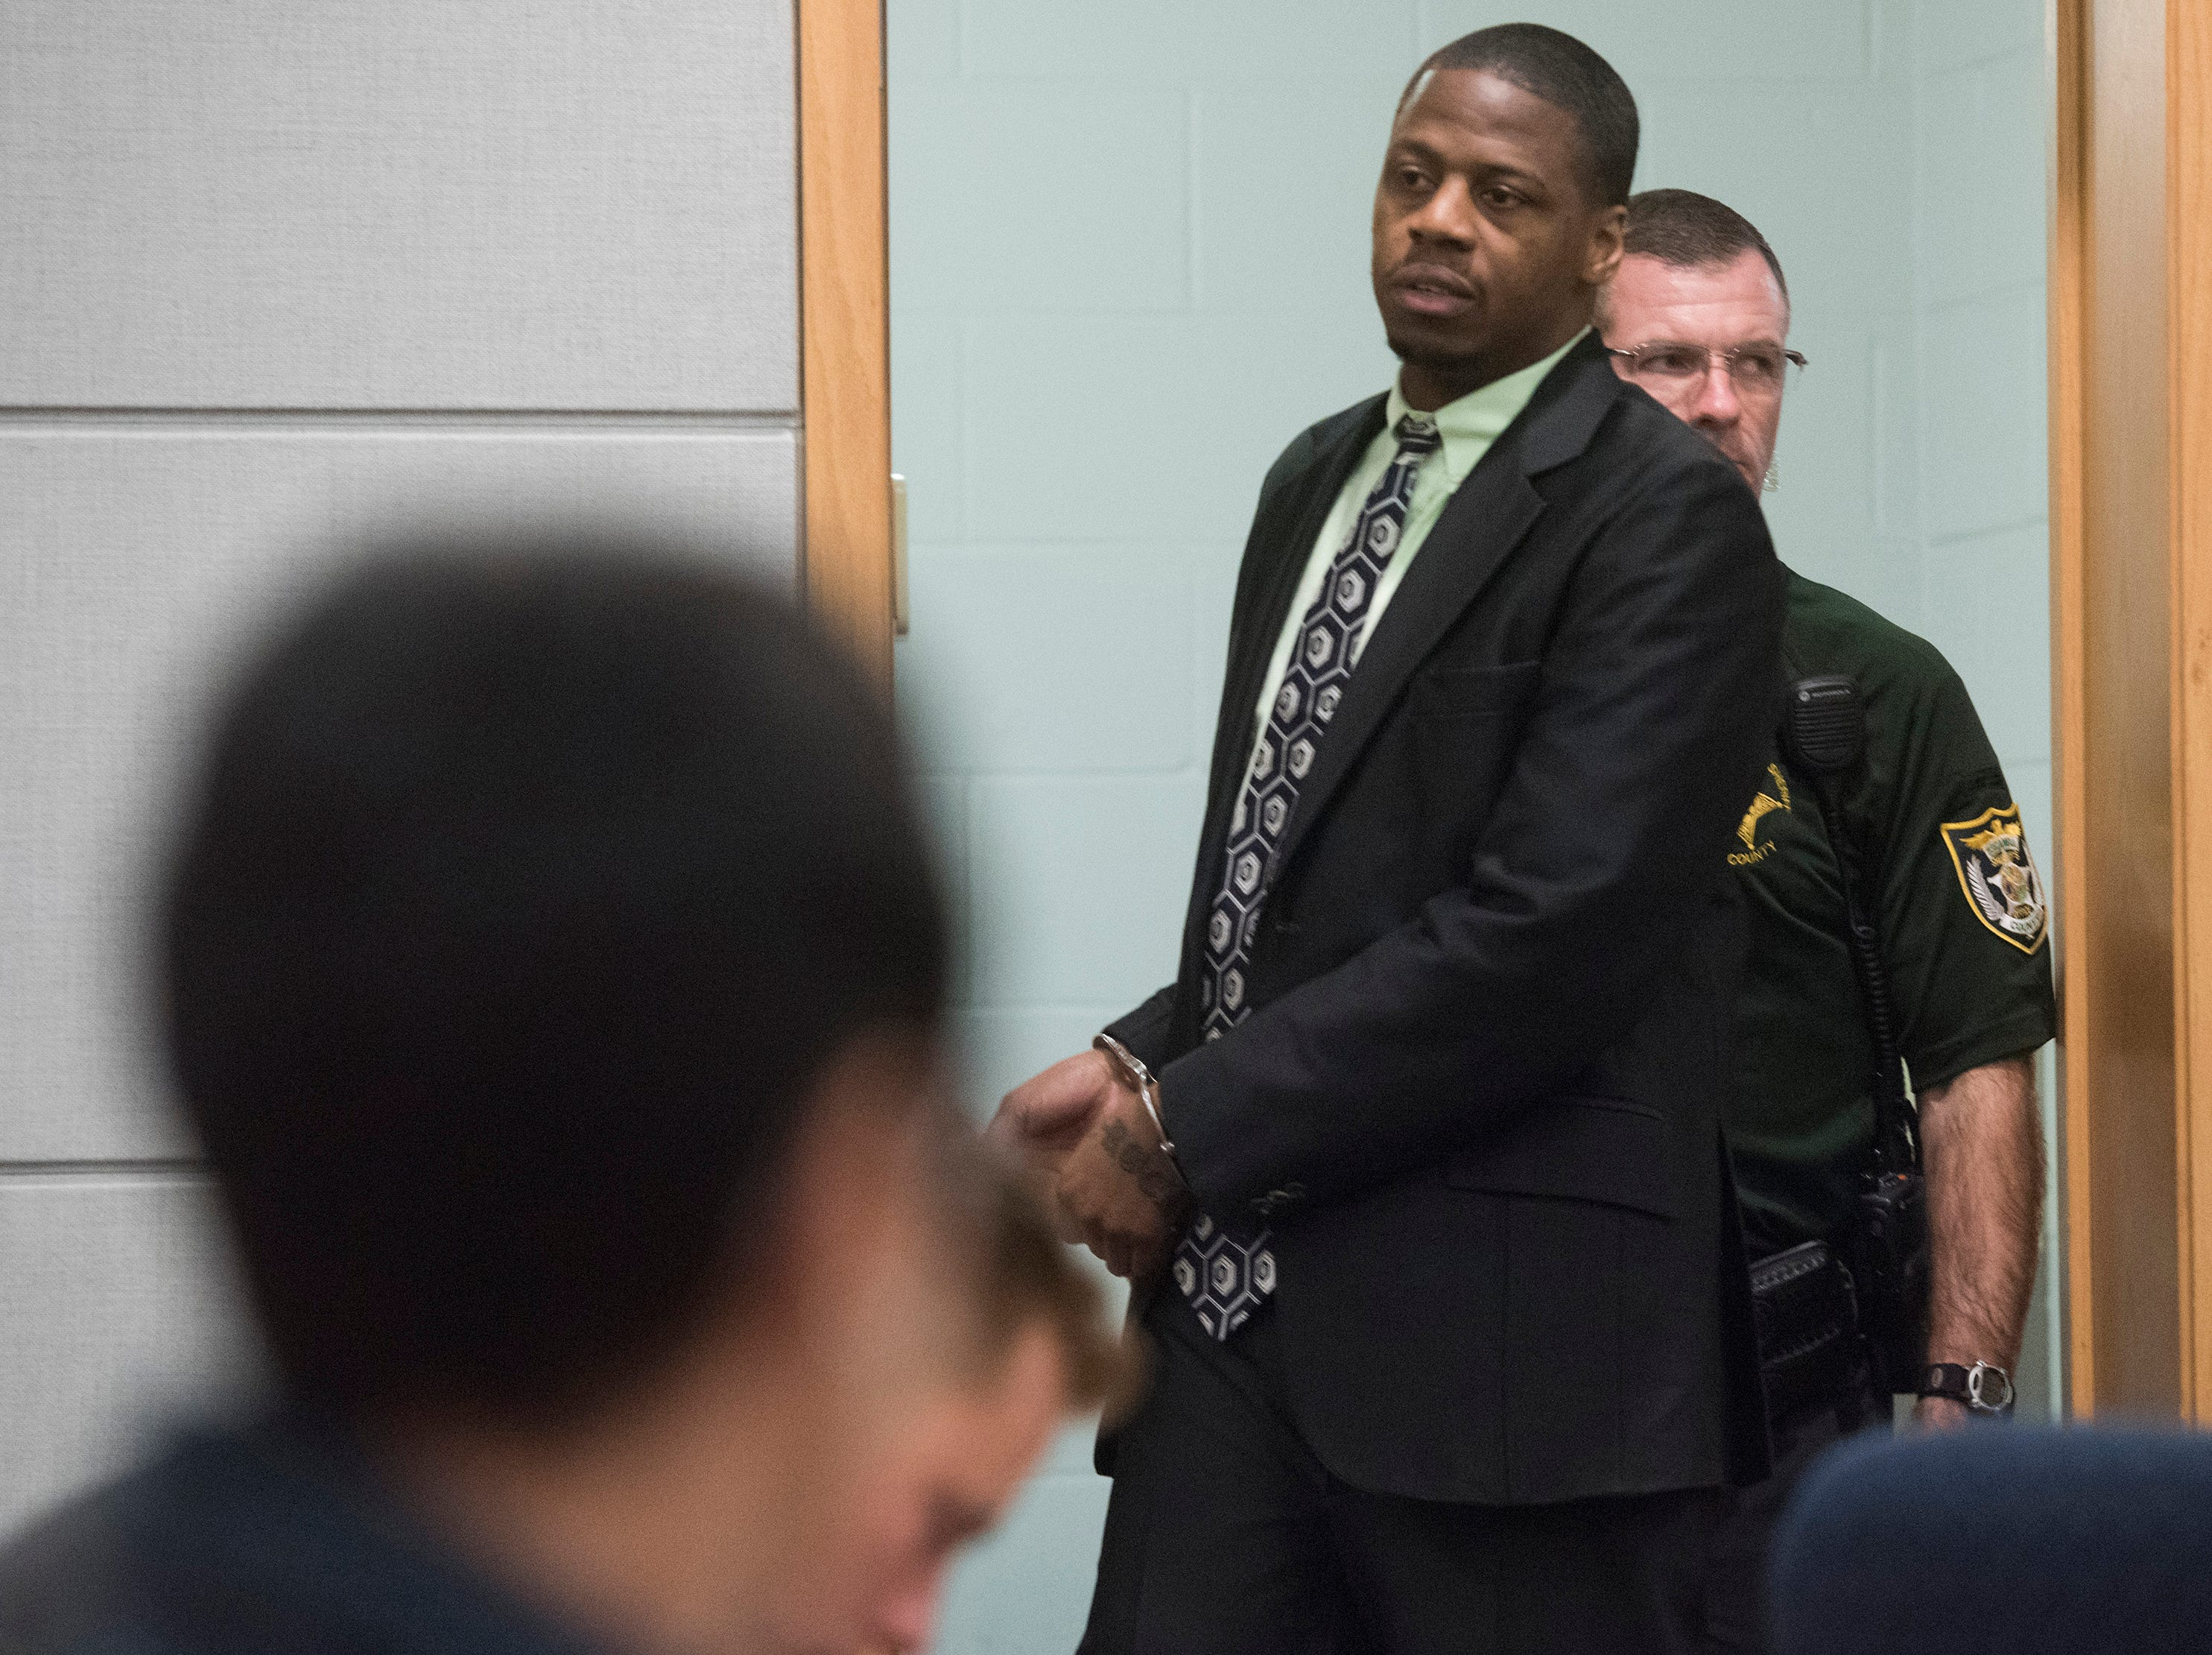 PHOTOS: Second trial underway for Pensacola man accused in baby's death